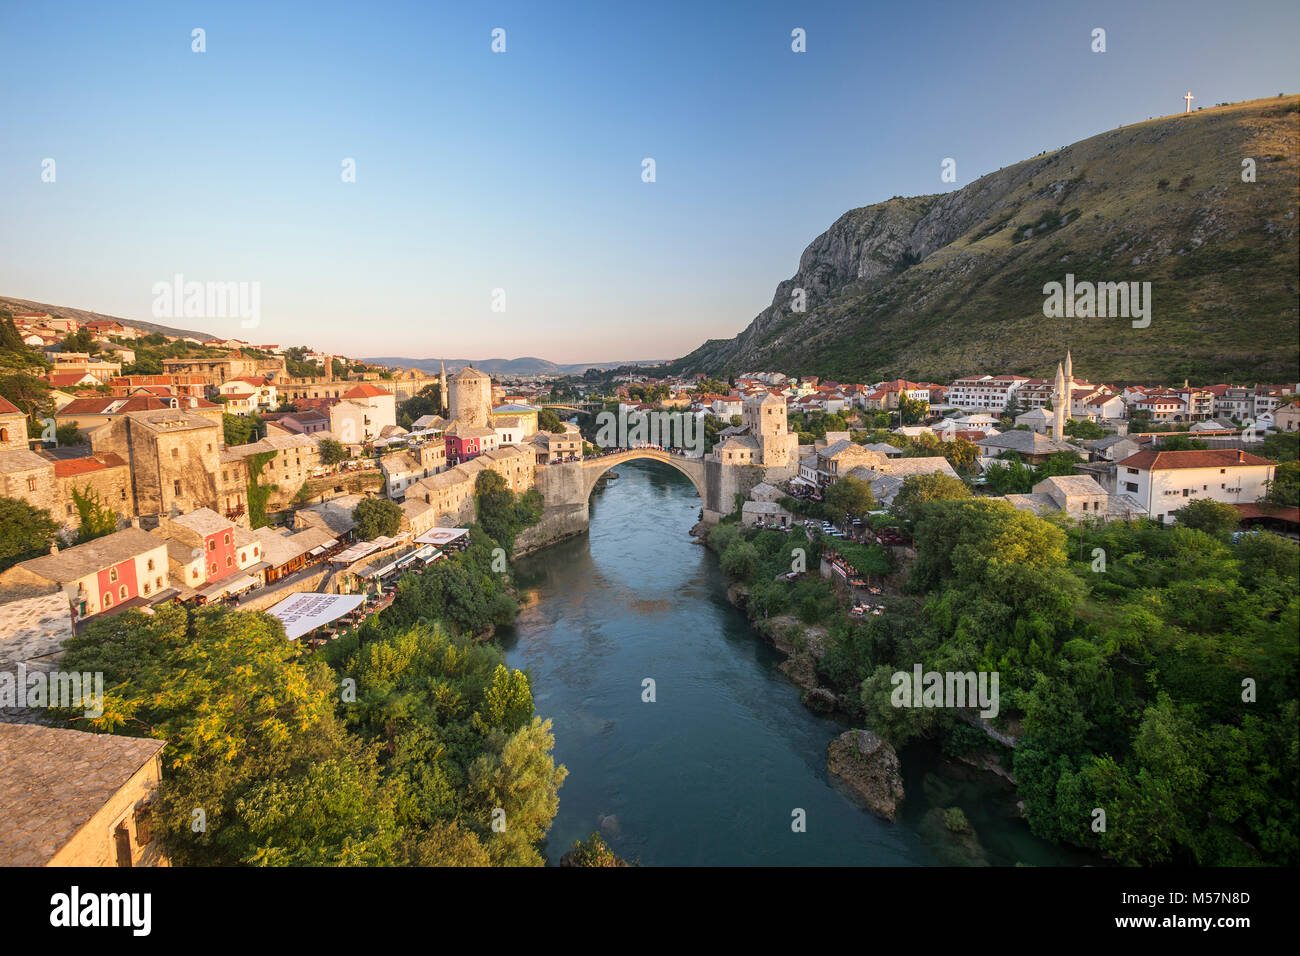 An aerial view of the Neretva river which runs across old town of Mostar and its Old Bridge (Stari Most) area (Bosnia - Stock Image